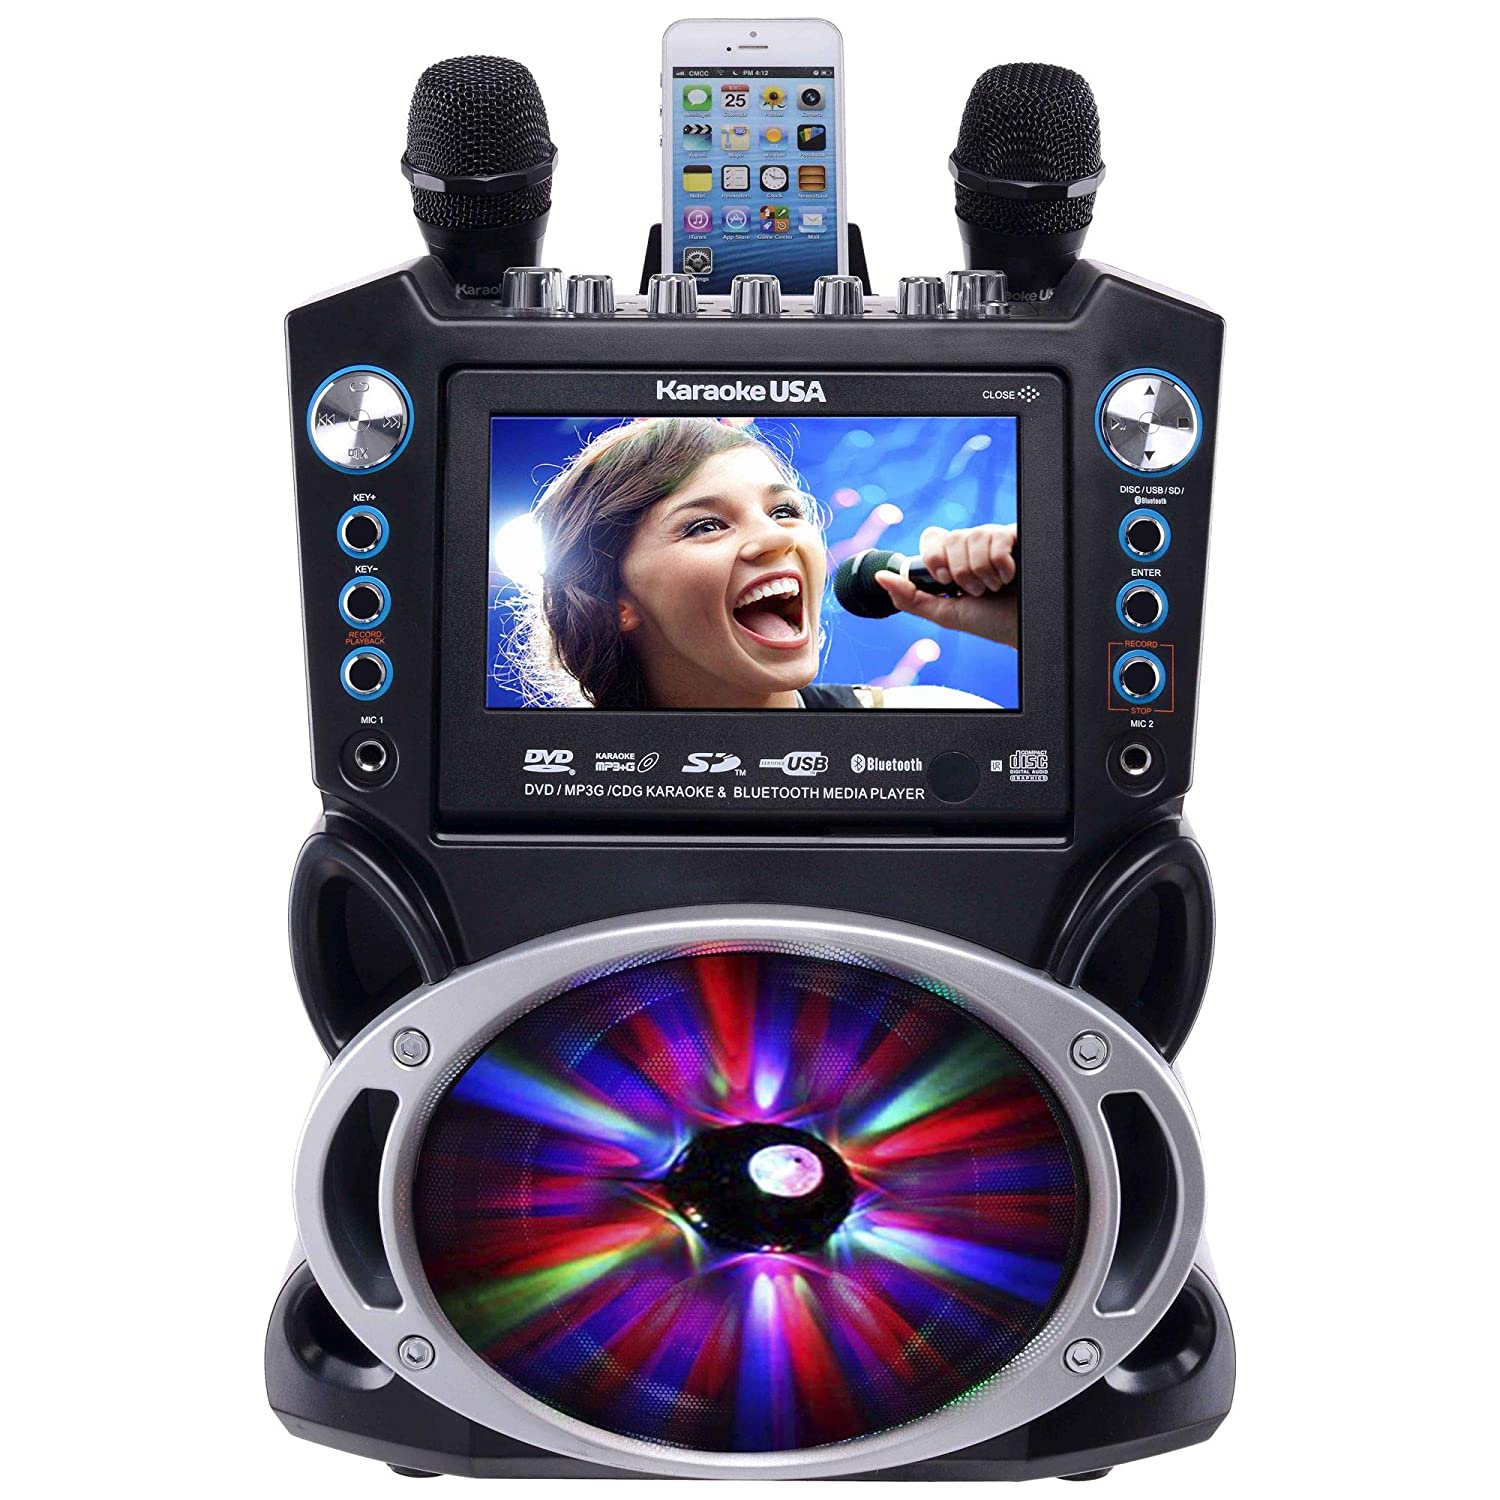 Top 10 Best Karaoke Machine